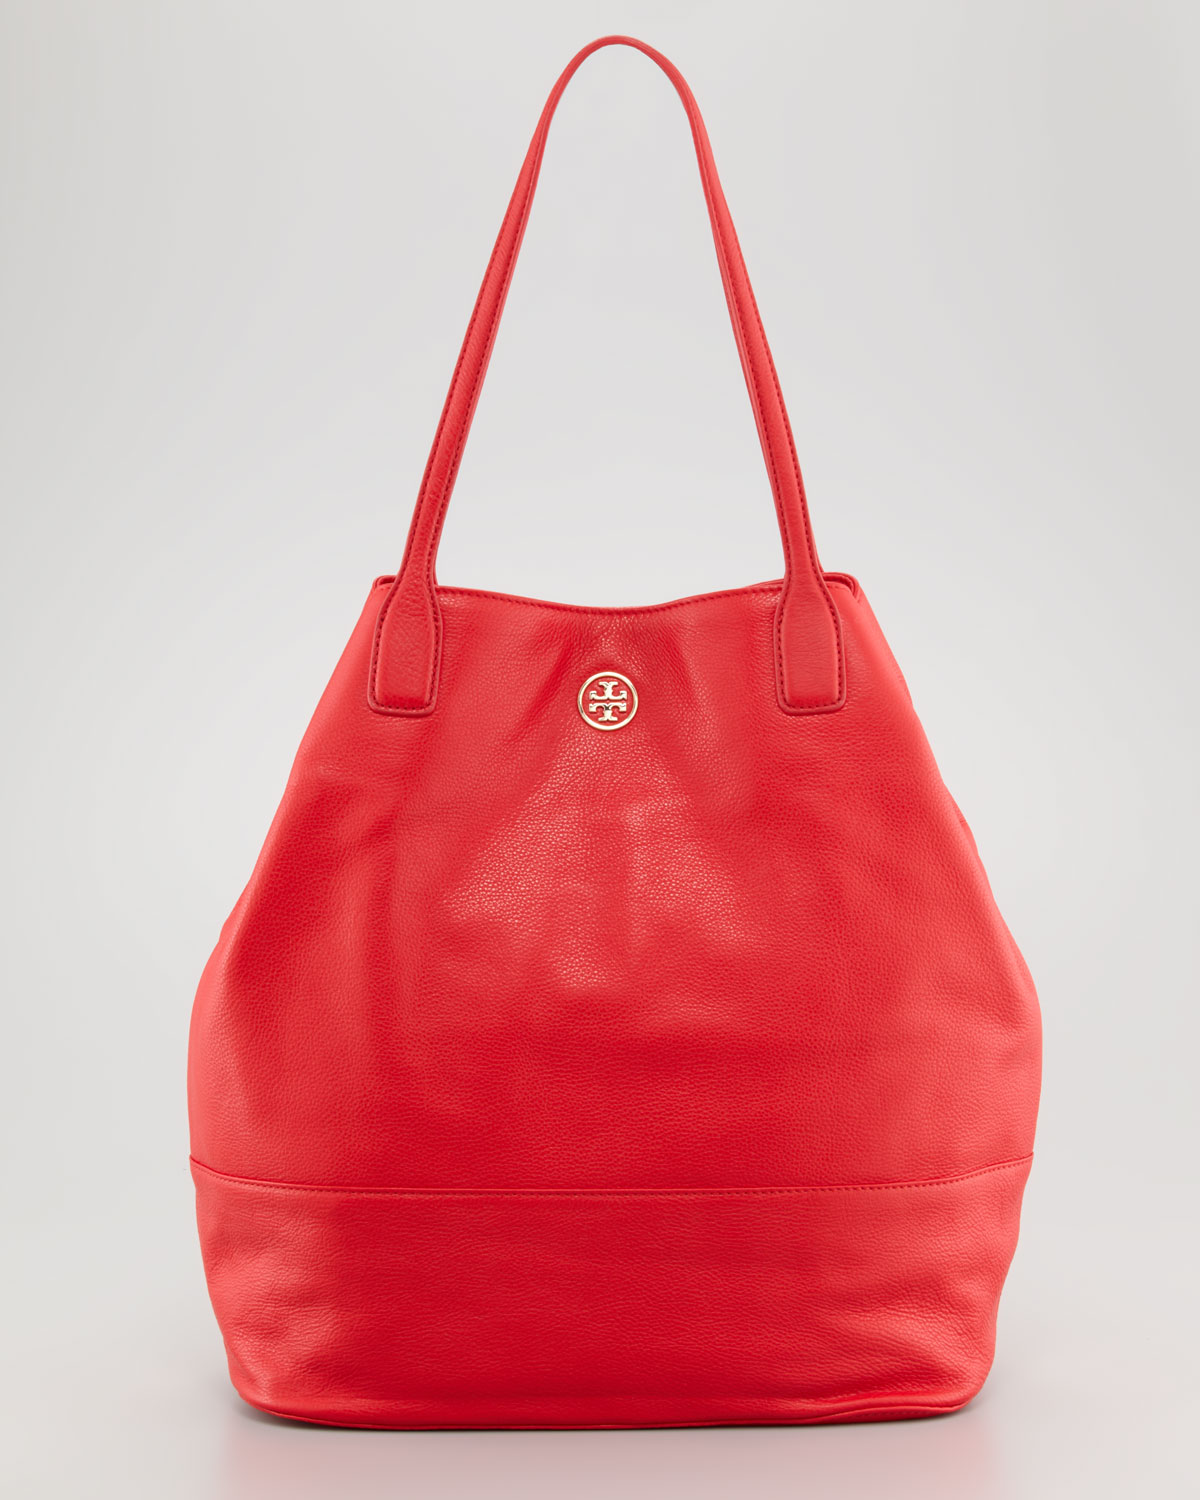 Lyst - Tory Burch Michelle Pebbled Leather Tote Bag in Red 7b20d8c1e06ea